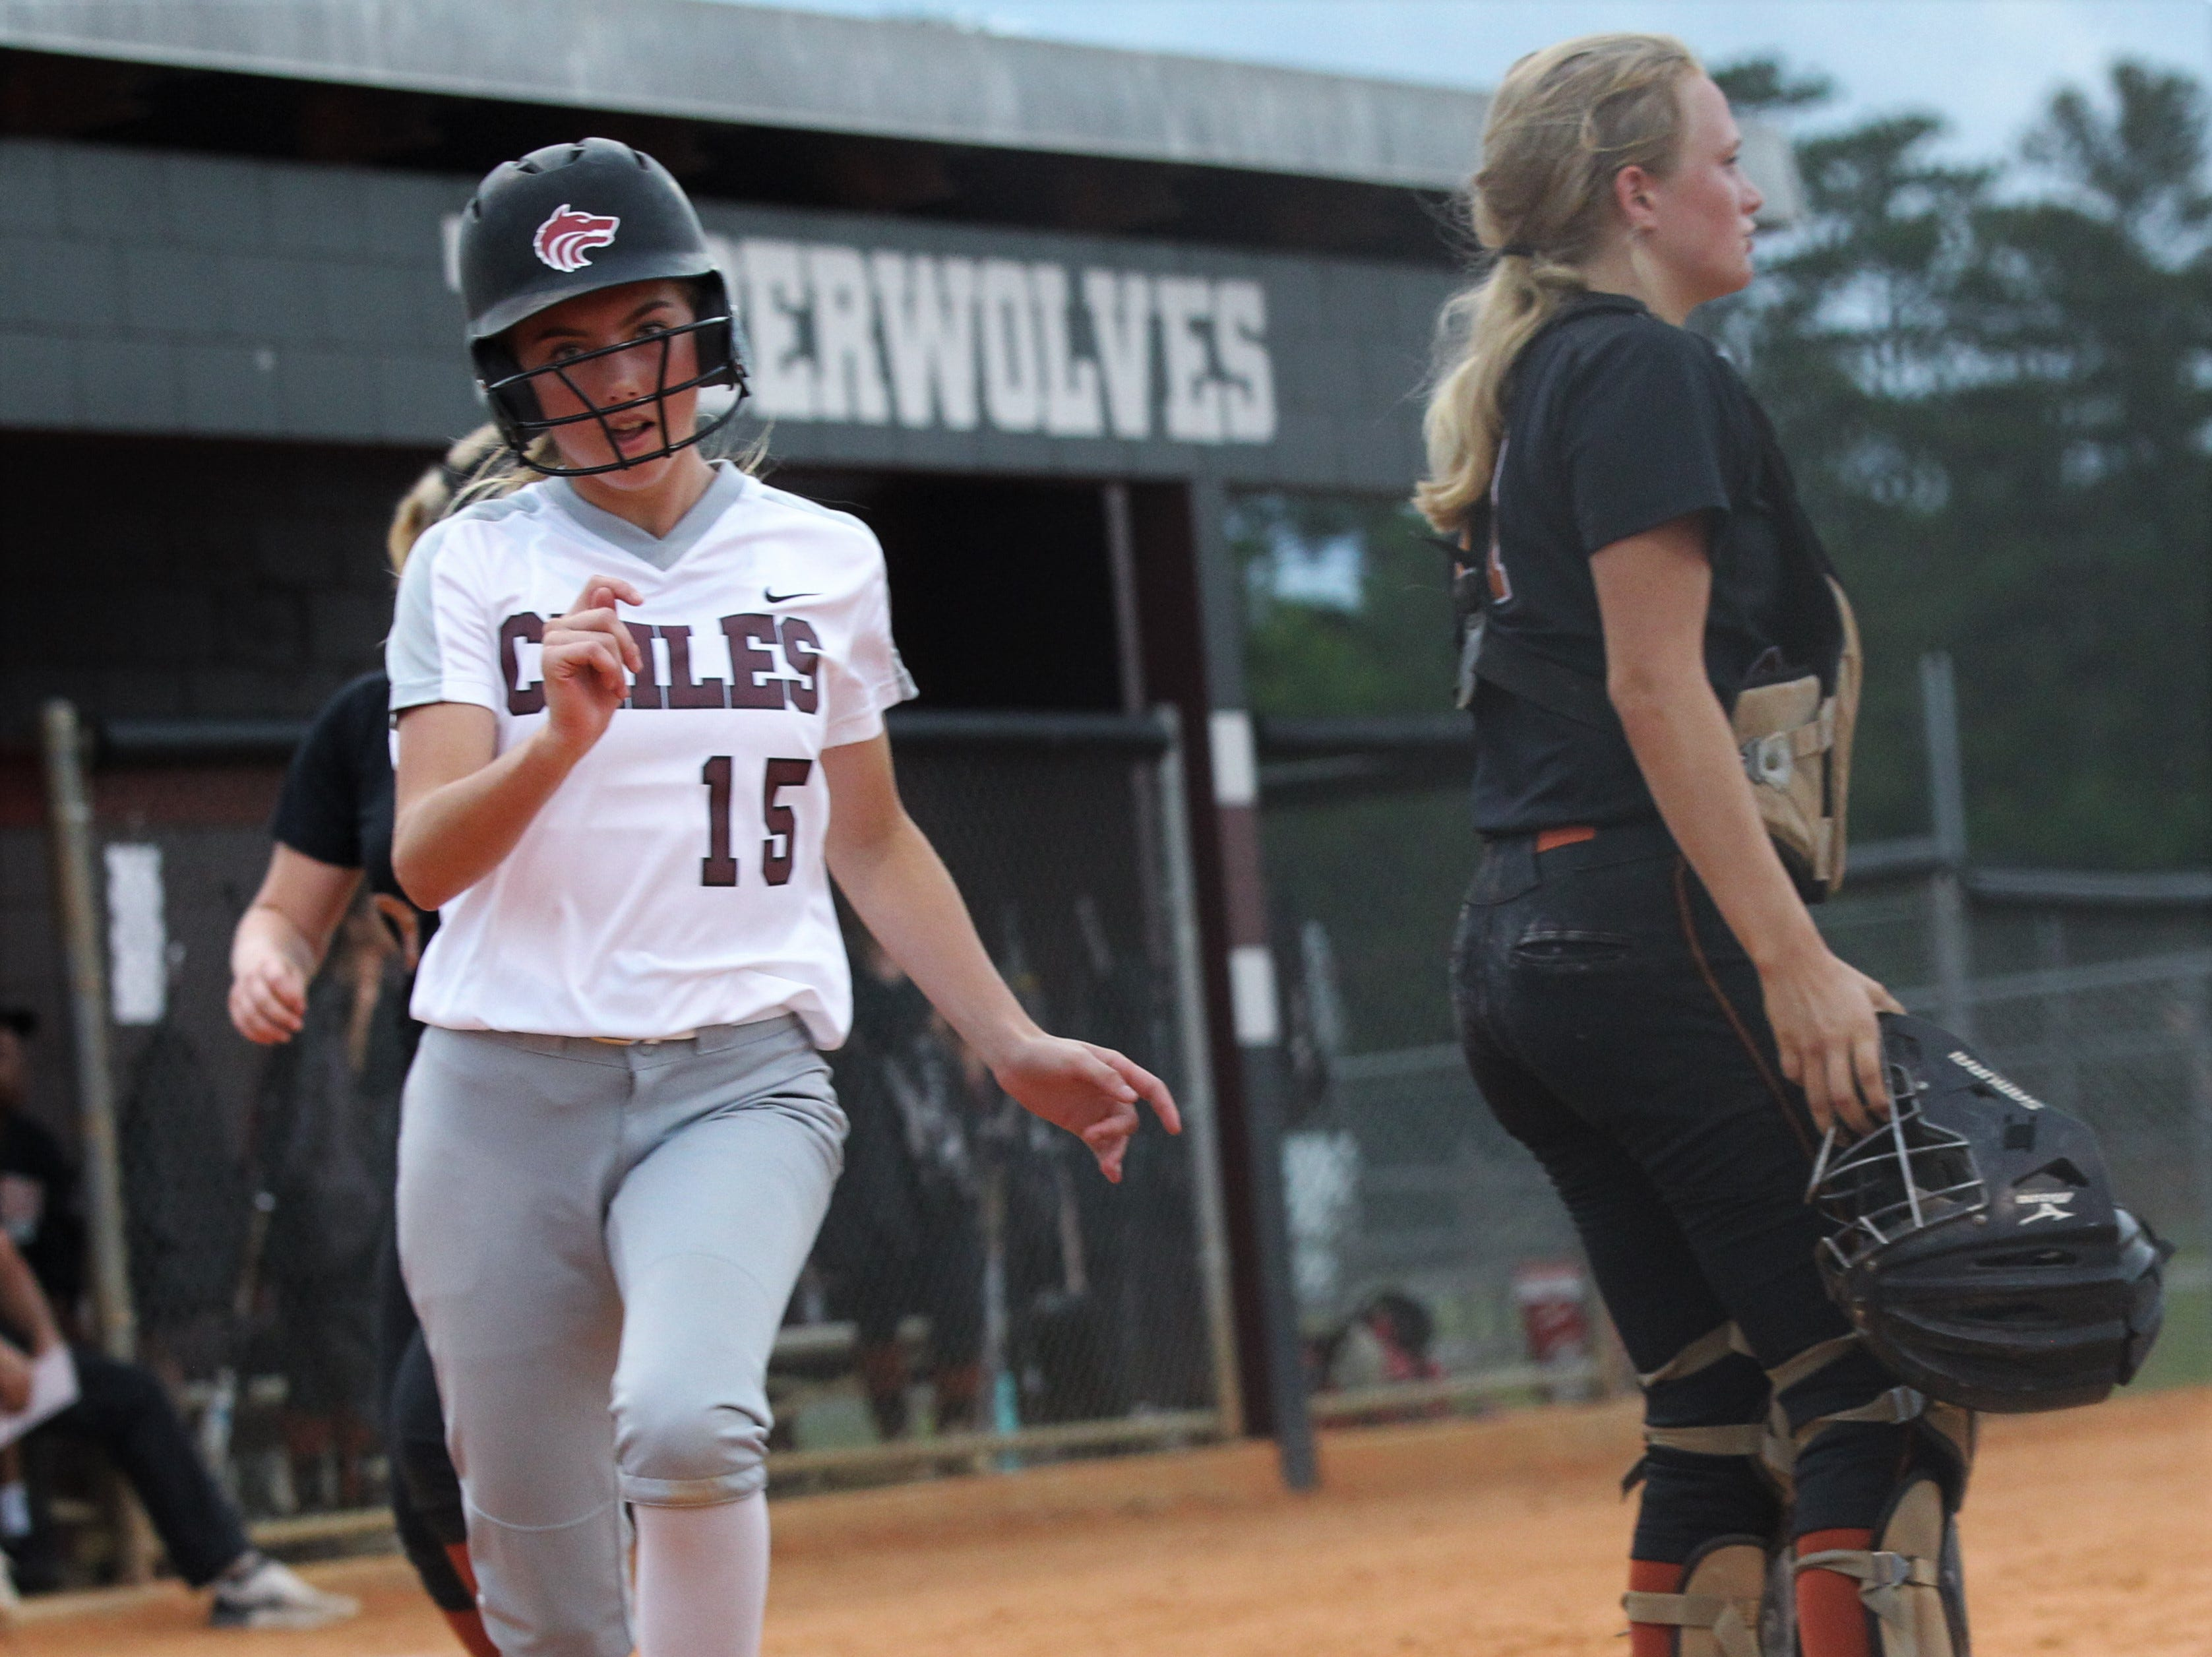 Chiles freshman Baylee Smith scores a run as the Timberwolves beat Atlantic Coast 6-4 during a Region 1-8A quarterfinal softball game on Wednesday, May 8, 2019.